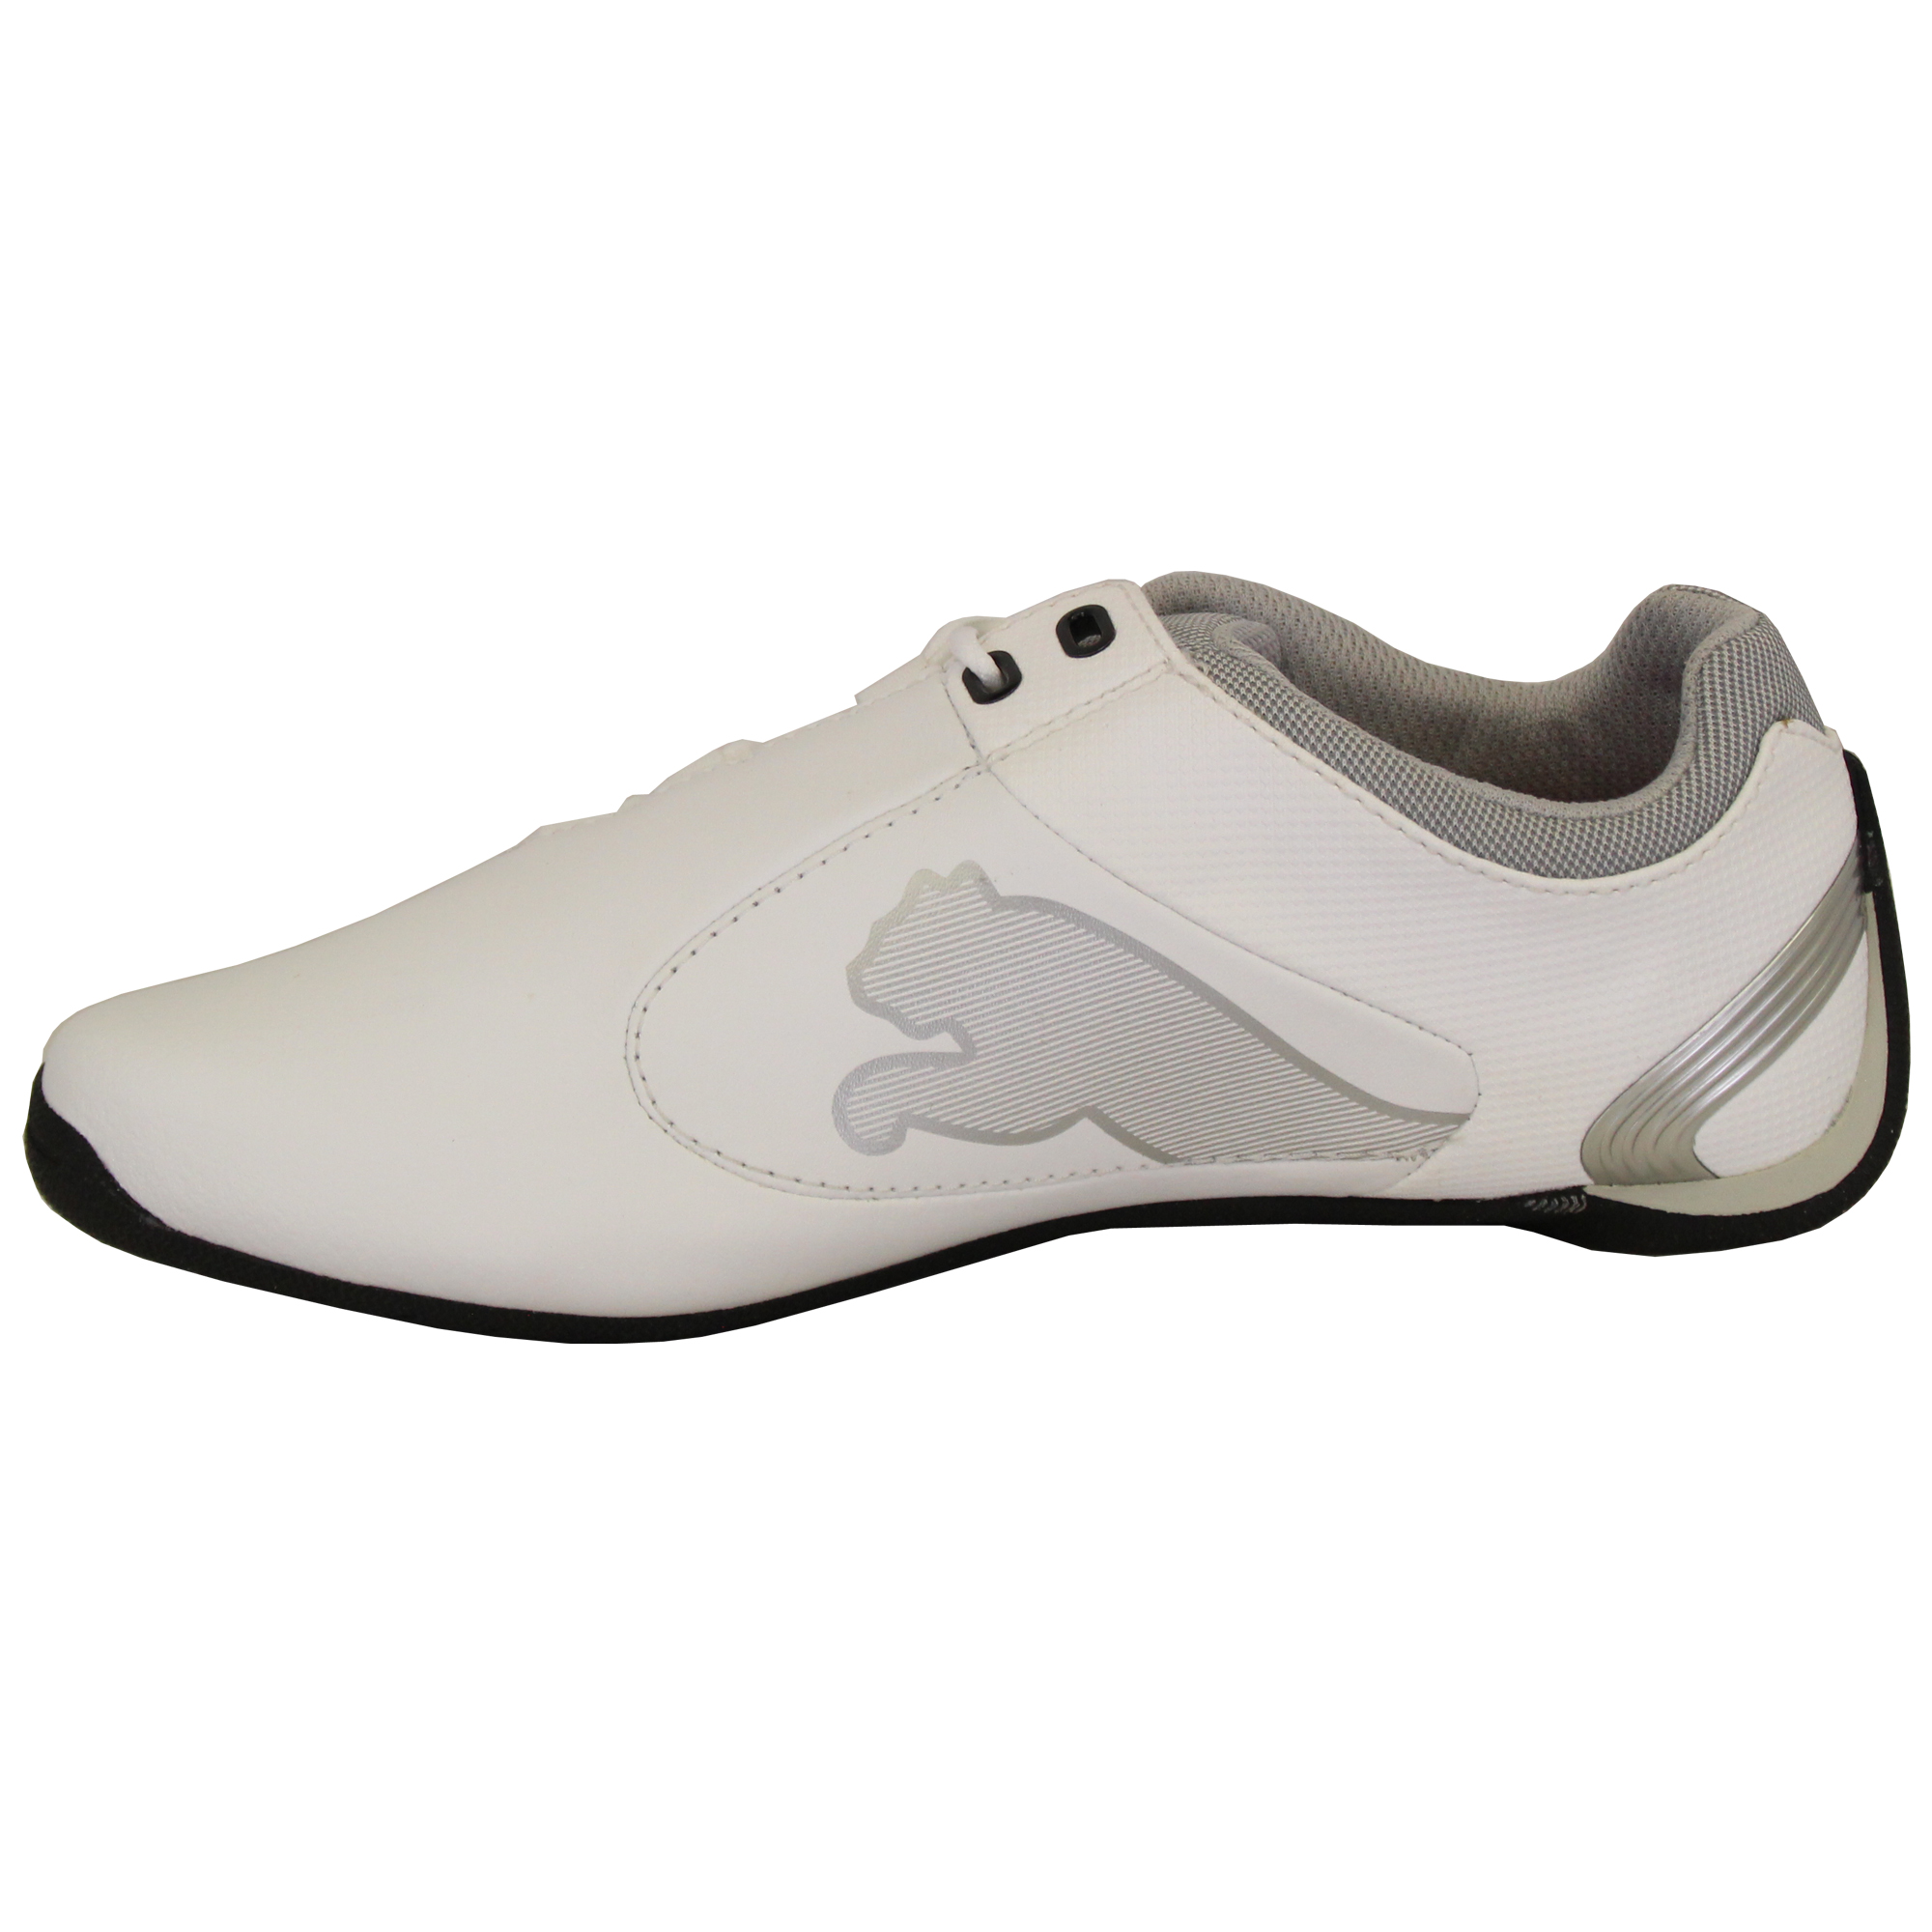 Boys-PUMA-Ferrari-Leather-Trainers-Kids-Evo-Power-Speed-Cat-Sports-Shoes-Casual thumbnail 11